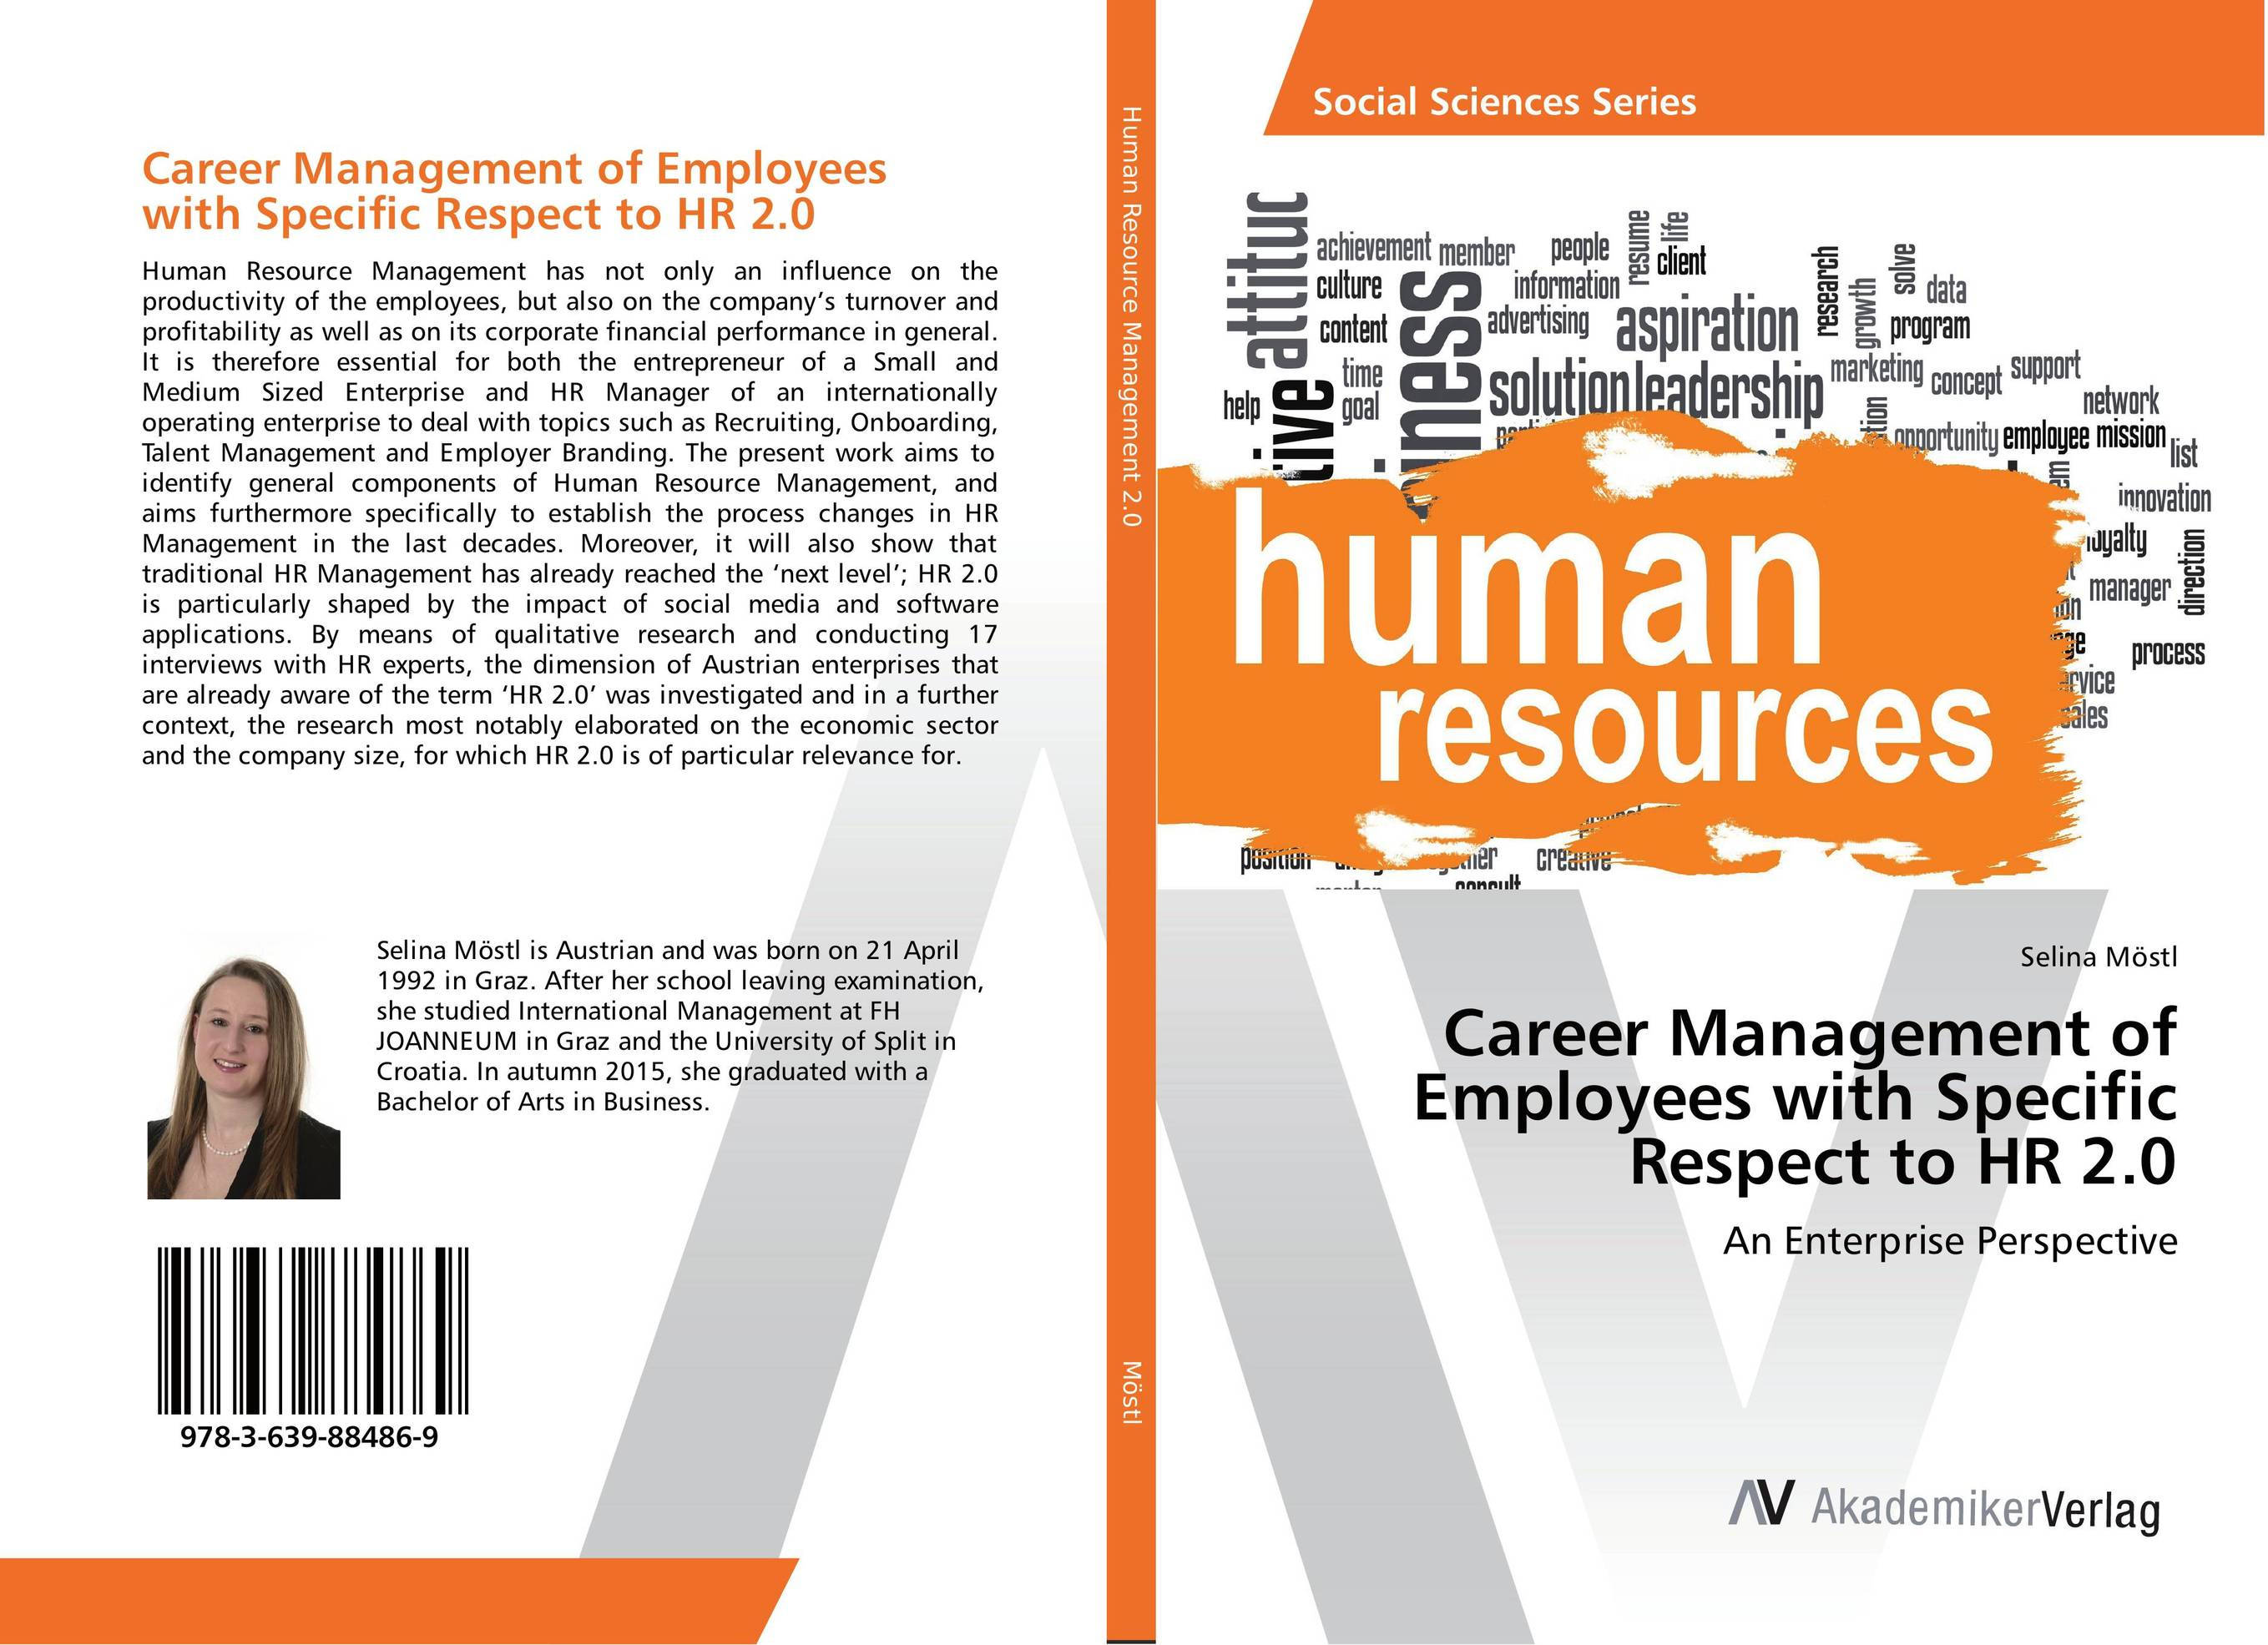 Career Management of Employees with Specific Respect to HR 2.0 the assistant principalship as a career